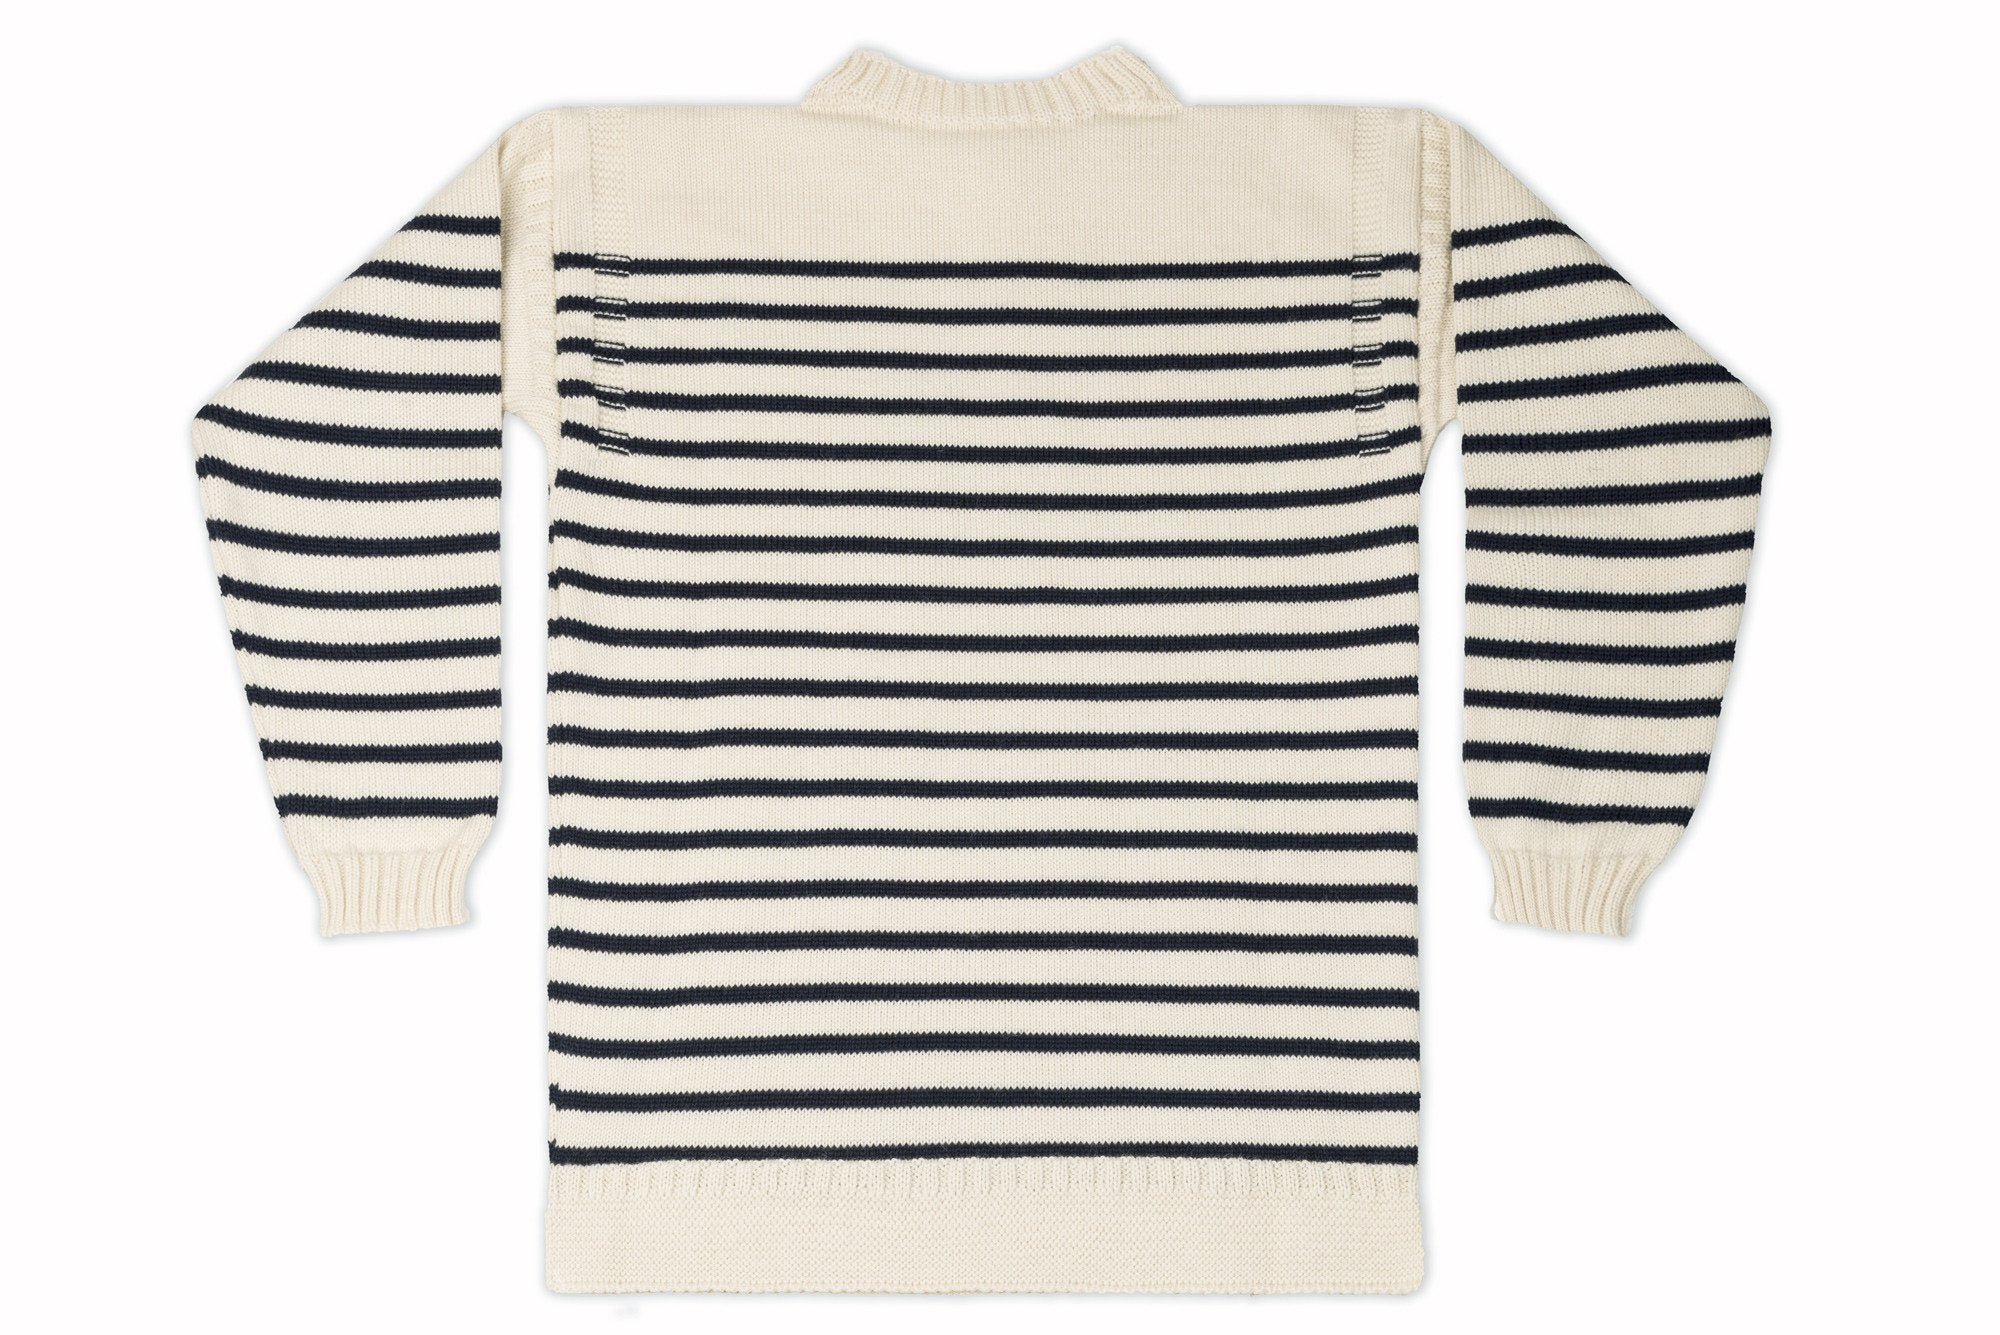 3cb9f66ed39 Traditional Guernsey Jumpers - Guernsey Woollens Ltd